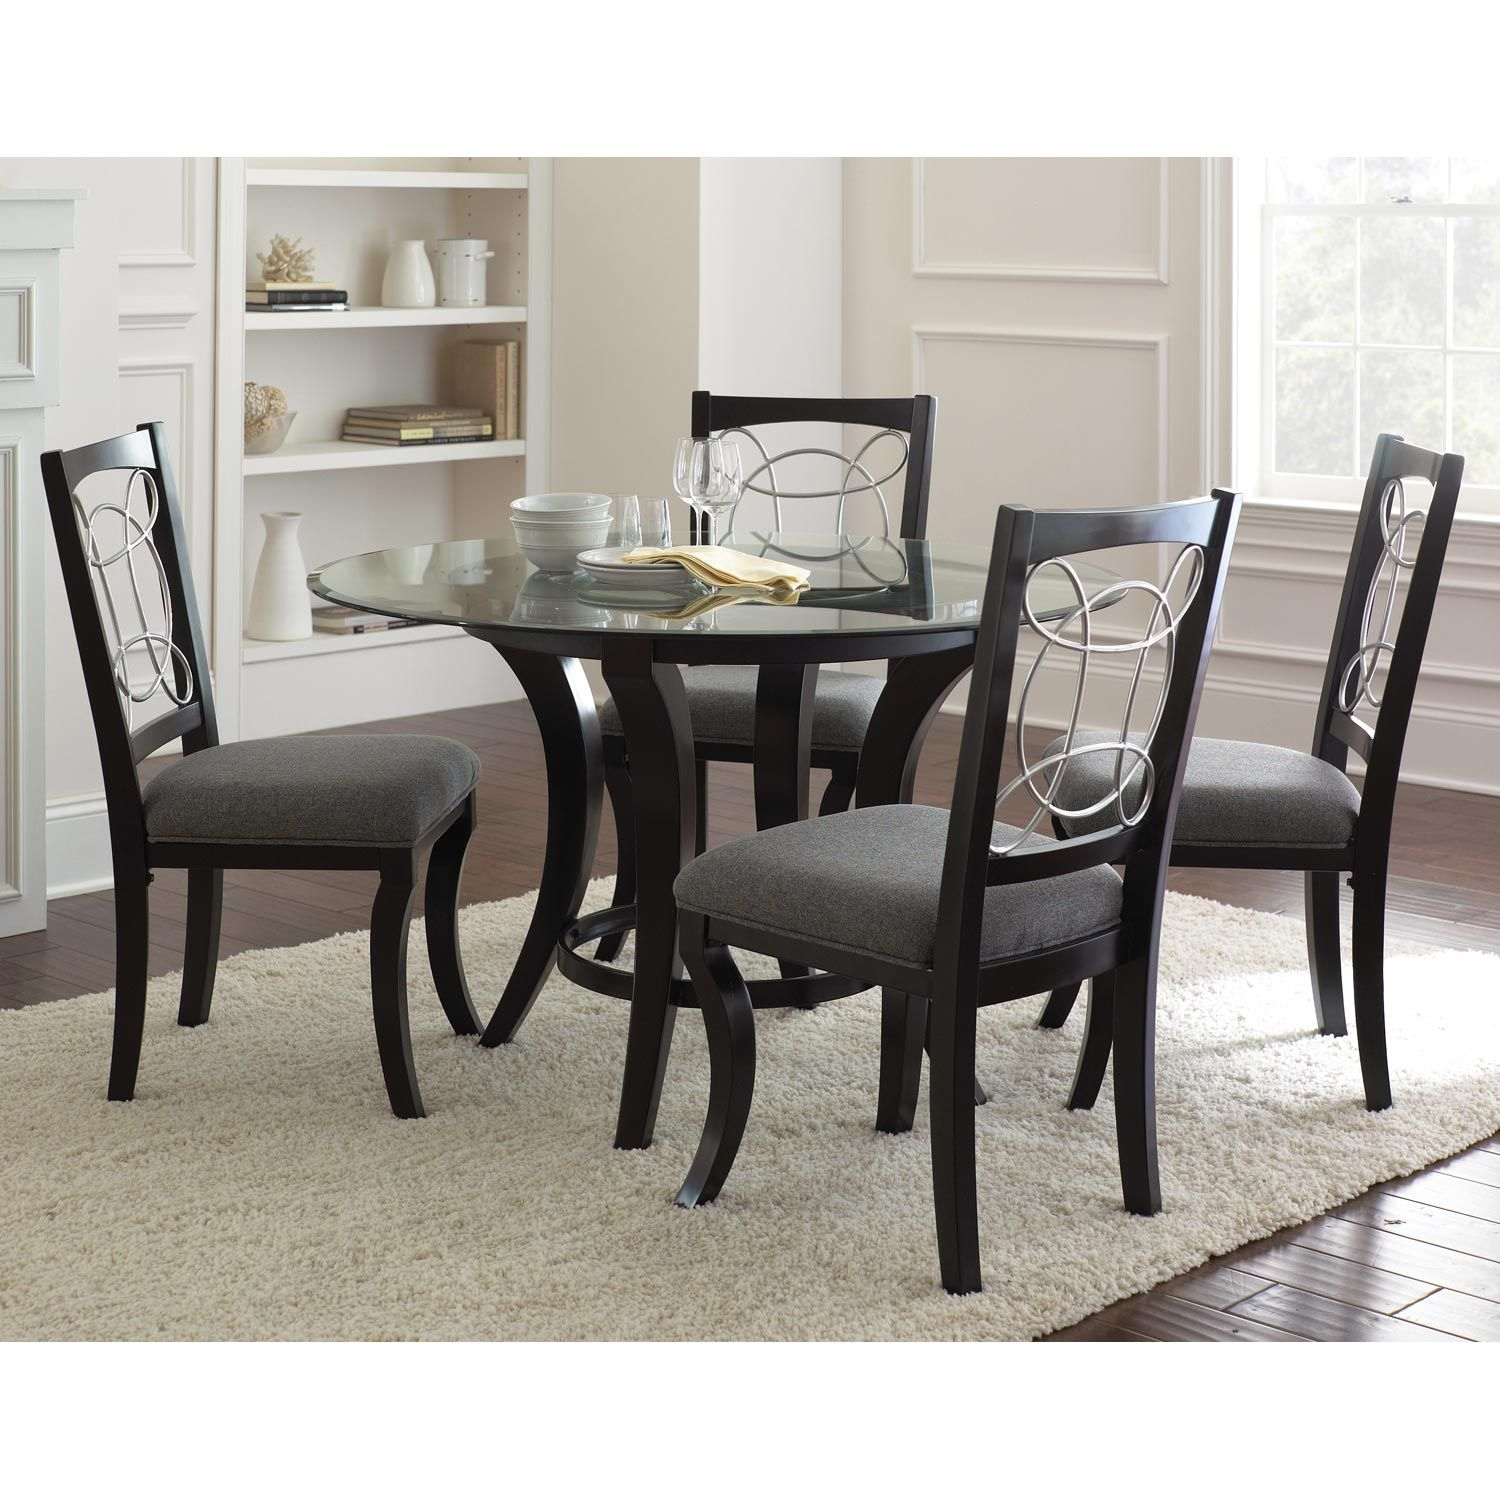 Cayman Modern Round Dining Set - Glass, Metal, Marble, Wood